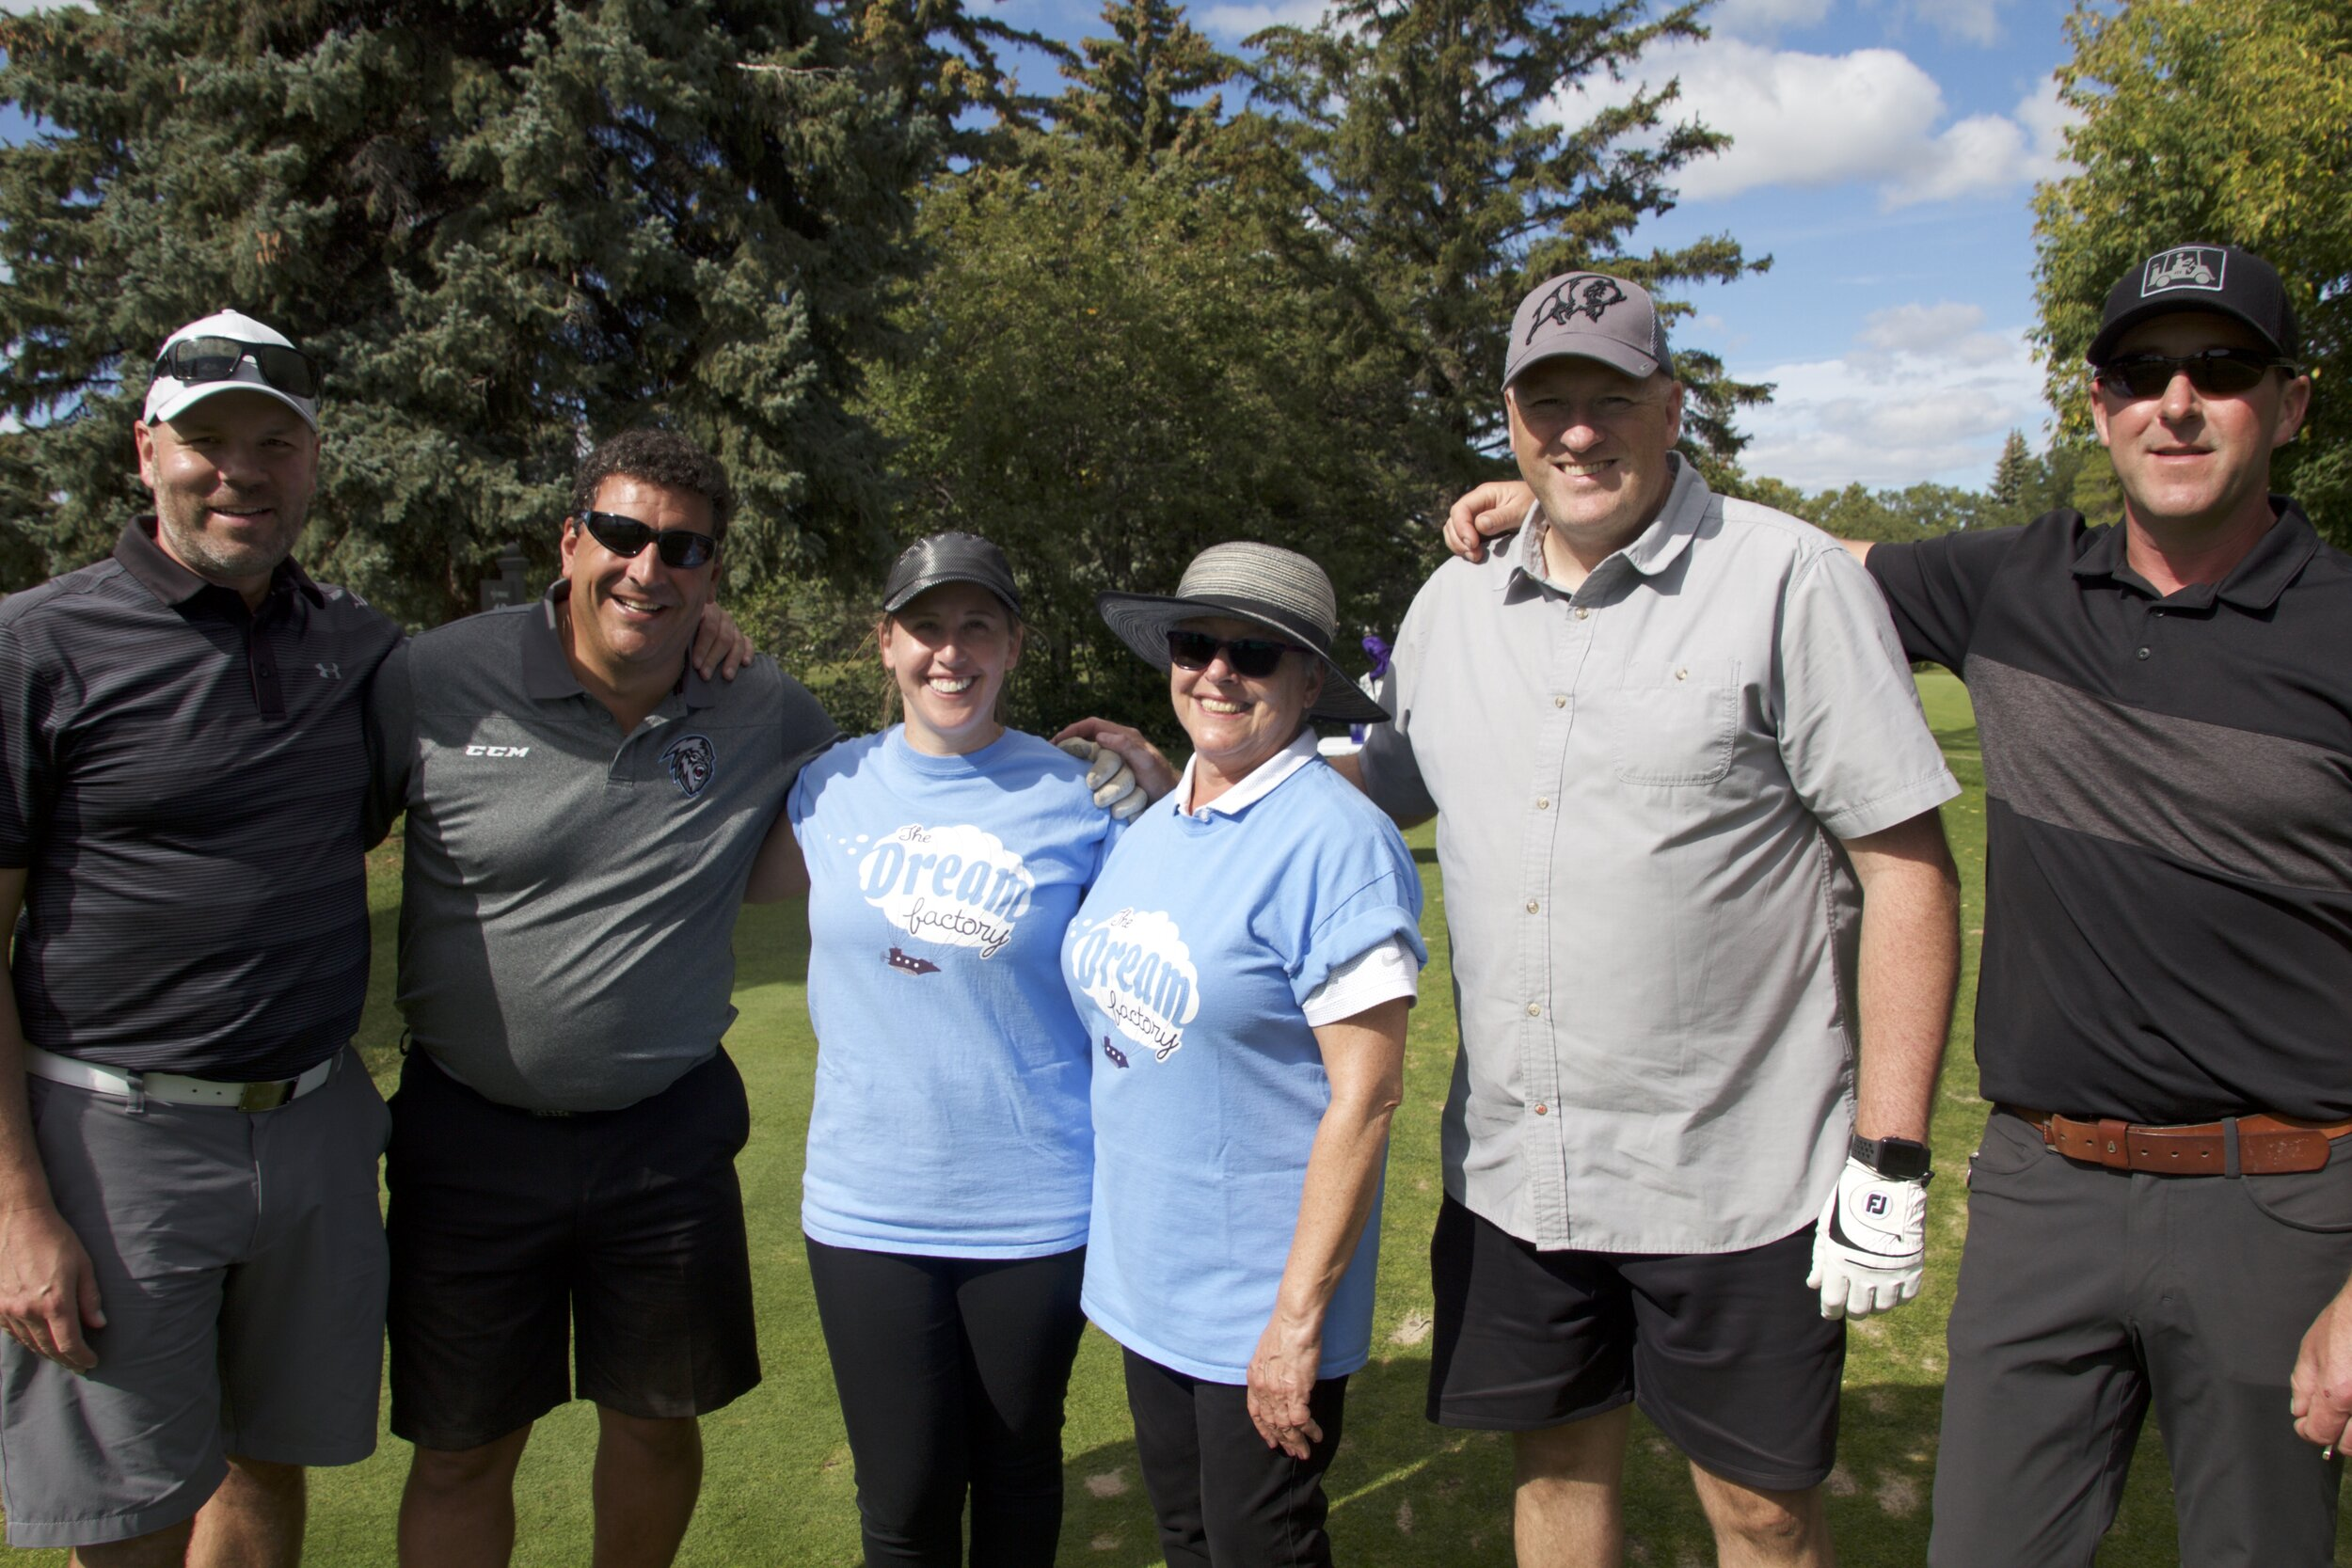 Pictured :  Marc Simard  (second from left) and his team at the 2019 Exchange Income Corporation Golf Fundraiser featuring Josh Morrissey of the Winnipeg Jets!